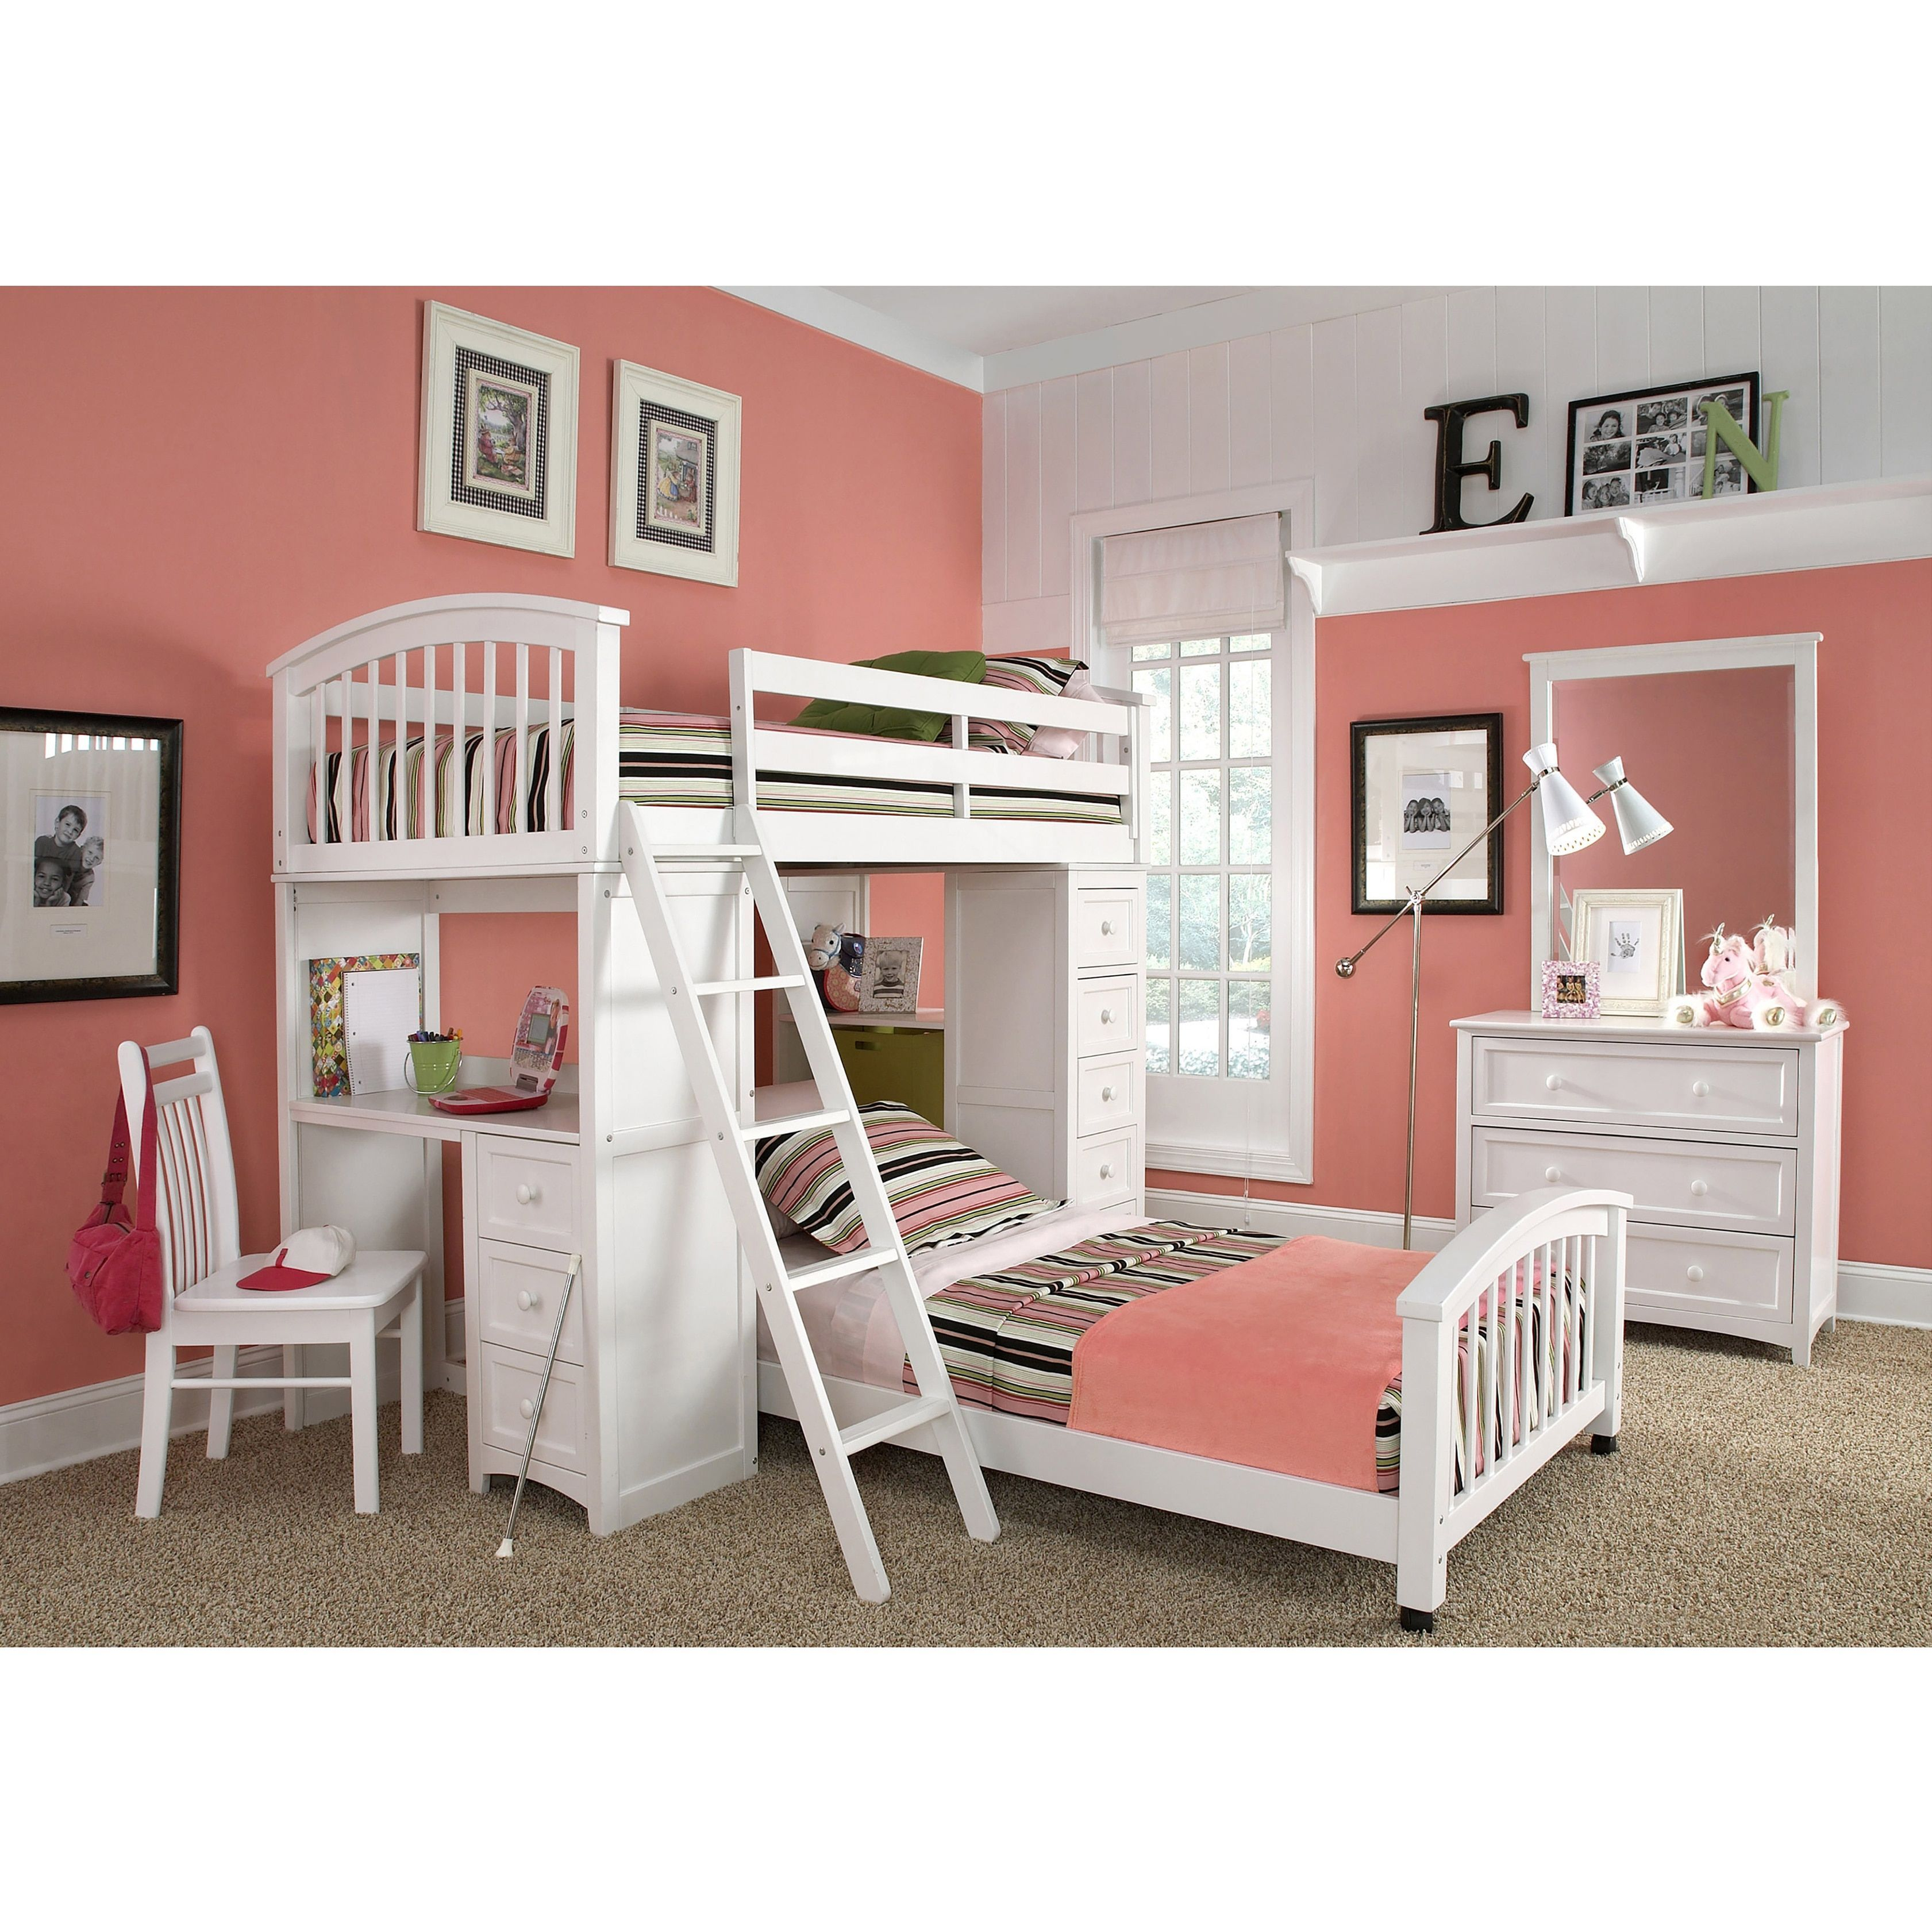 Cute loft bed ideas  School House Student Loft White and Lower Twin Bed Student Loft